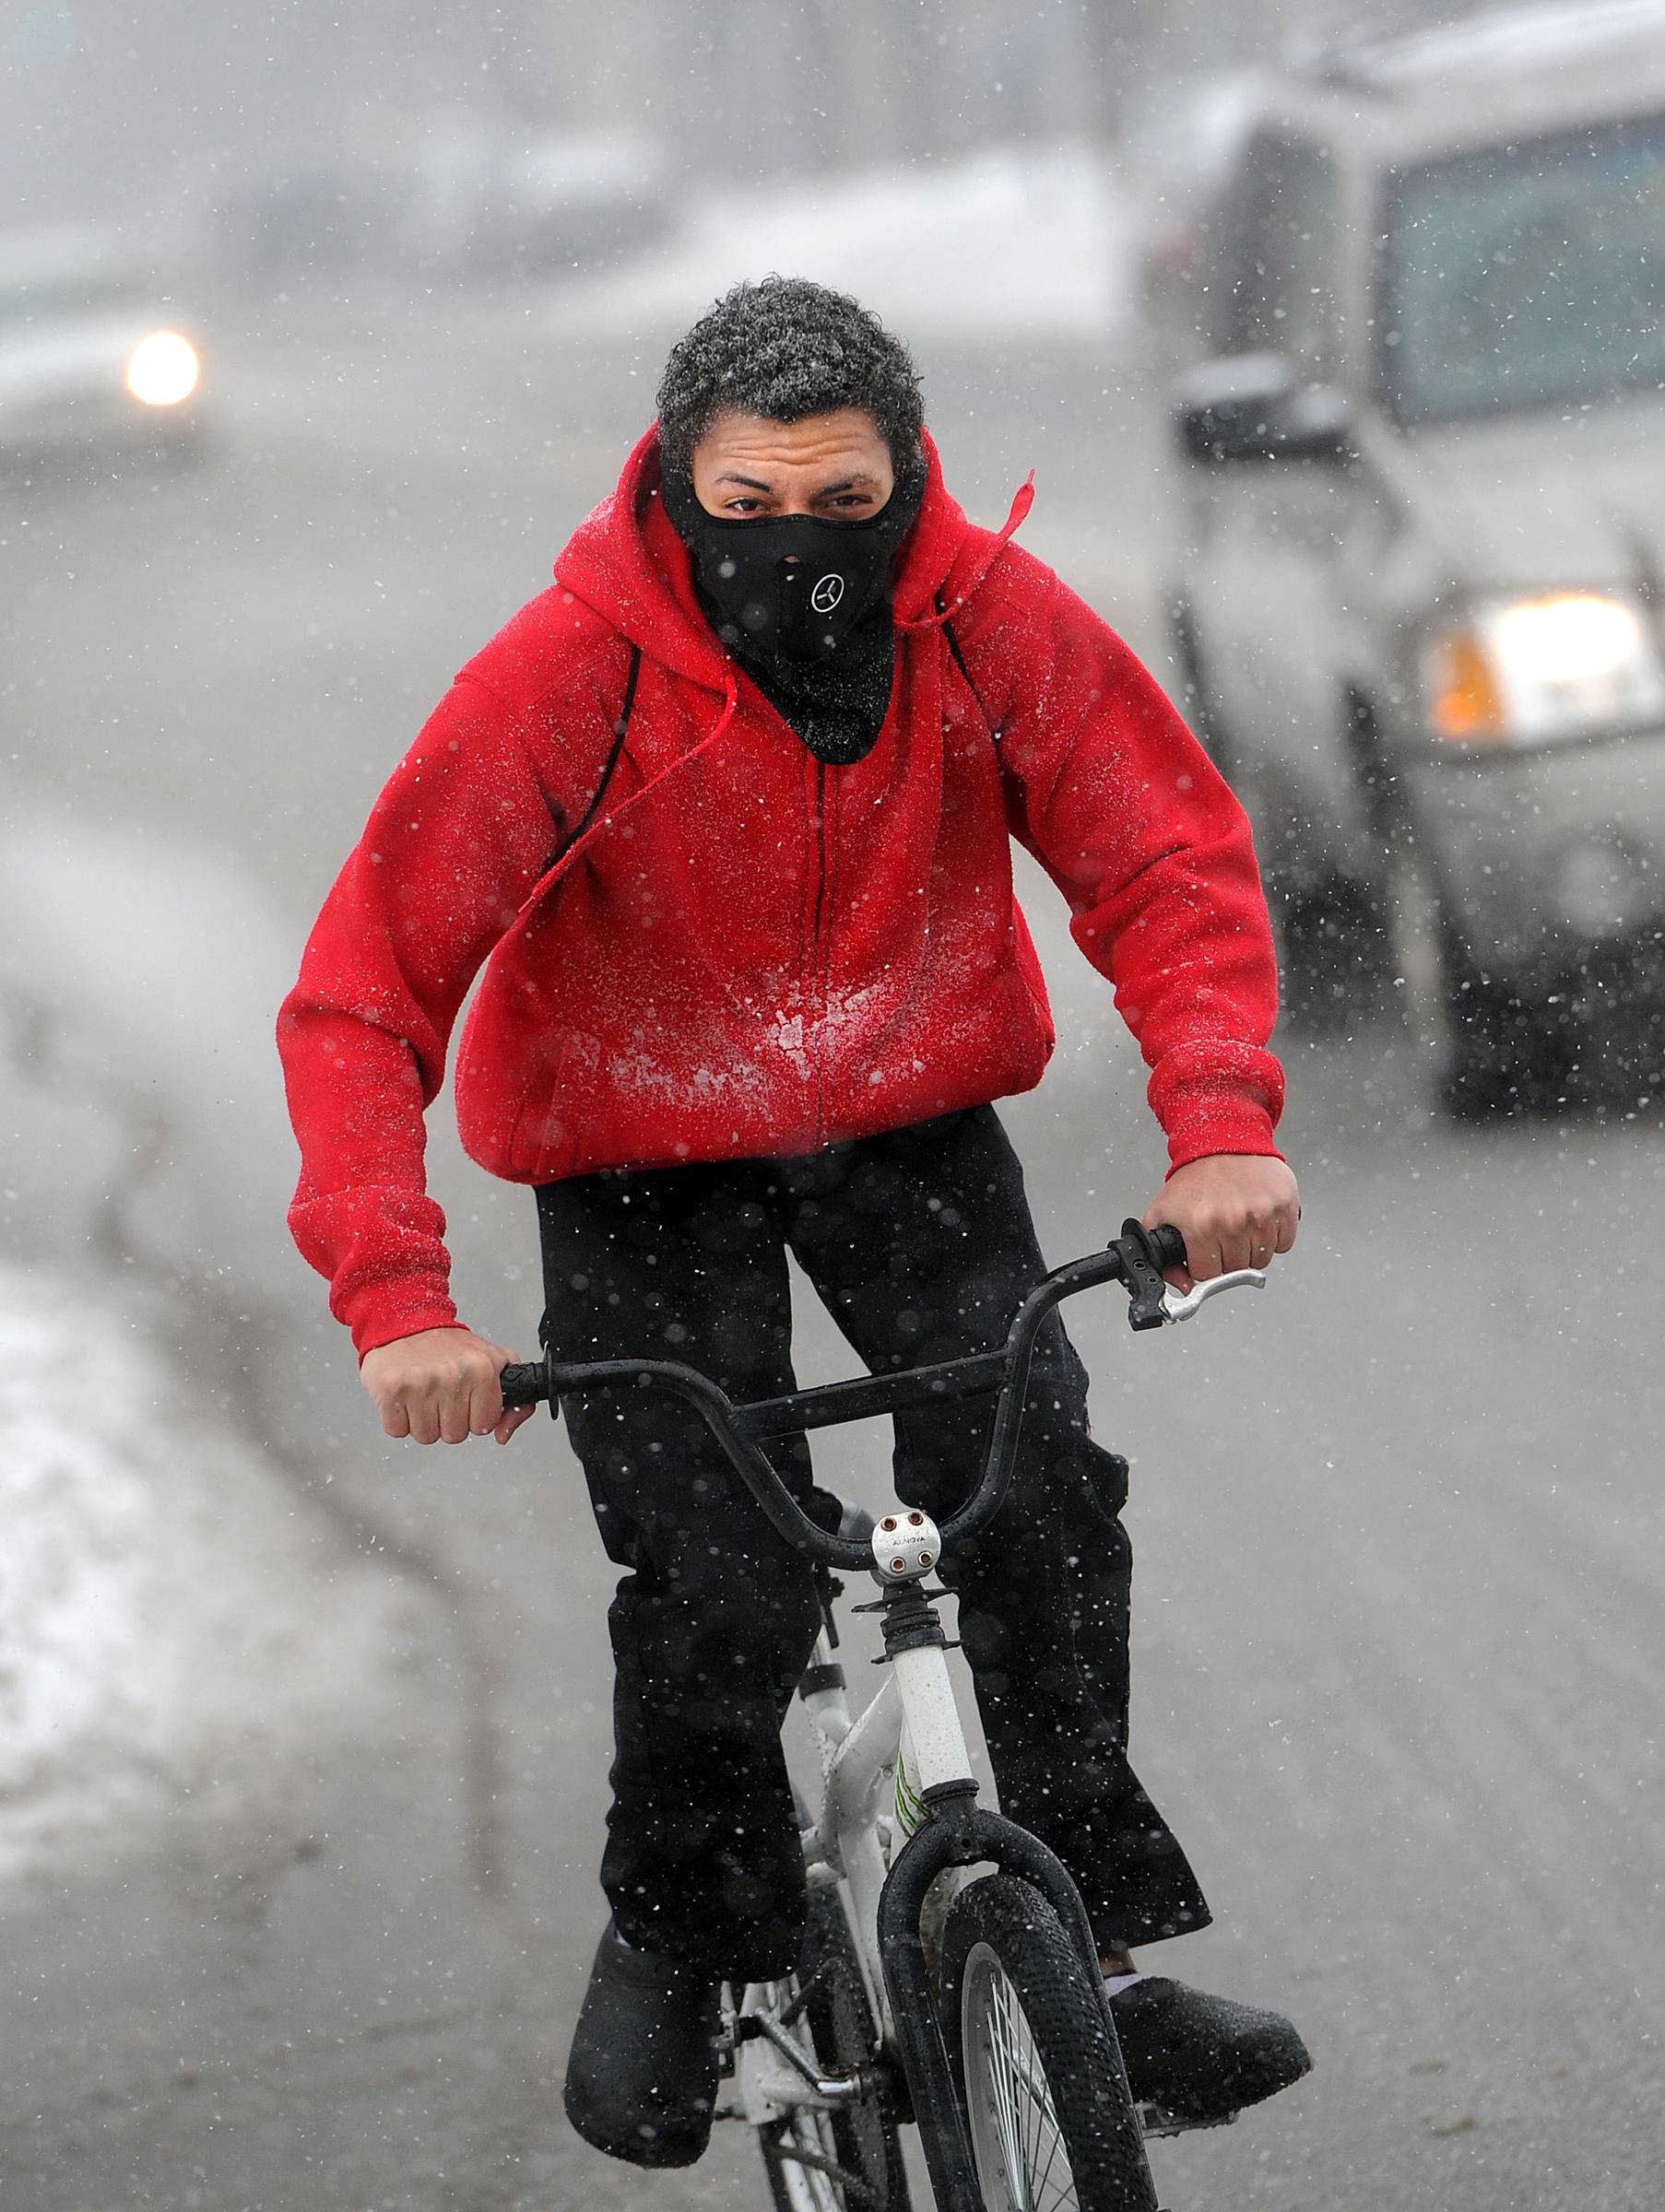 Emanuel Comfort, 17, rides his bike Saturday in the snowfall on South George Street in York, Pa.